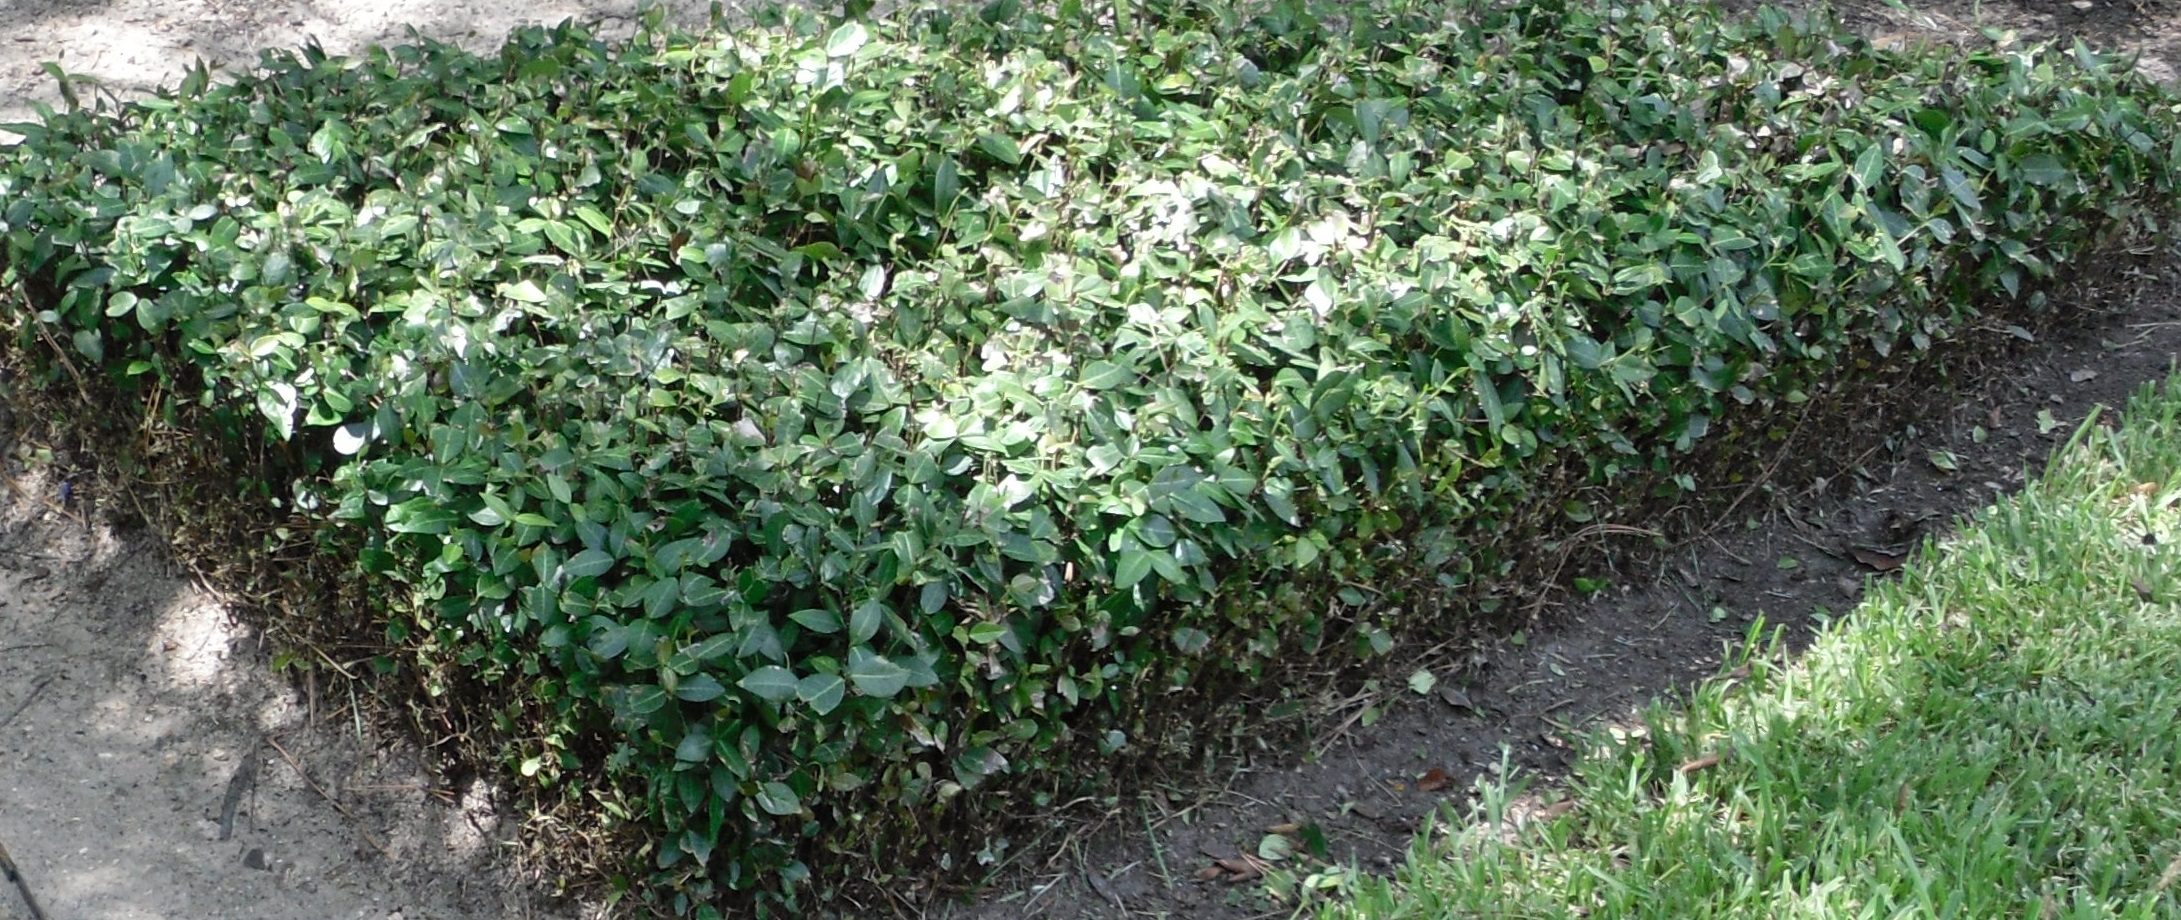 ASIAN JASMINE - A popular evergreen that makes a tough groundcover in  full sun or shade  with growth heights of 6-12 inches.  Asian jasmine is hard to beat because it's a hardy, strong spreader that provides a dense cover.